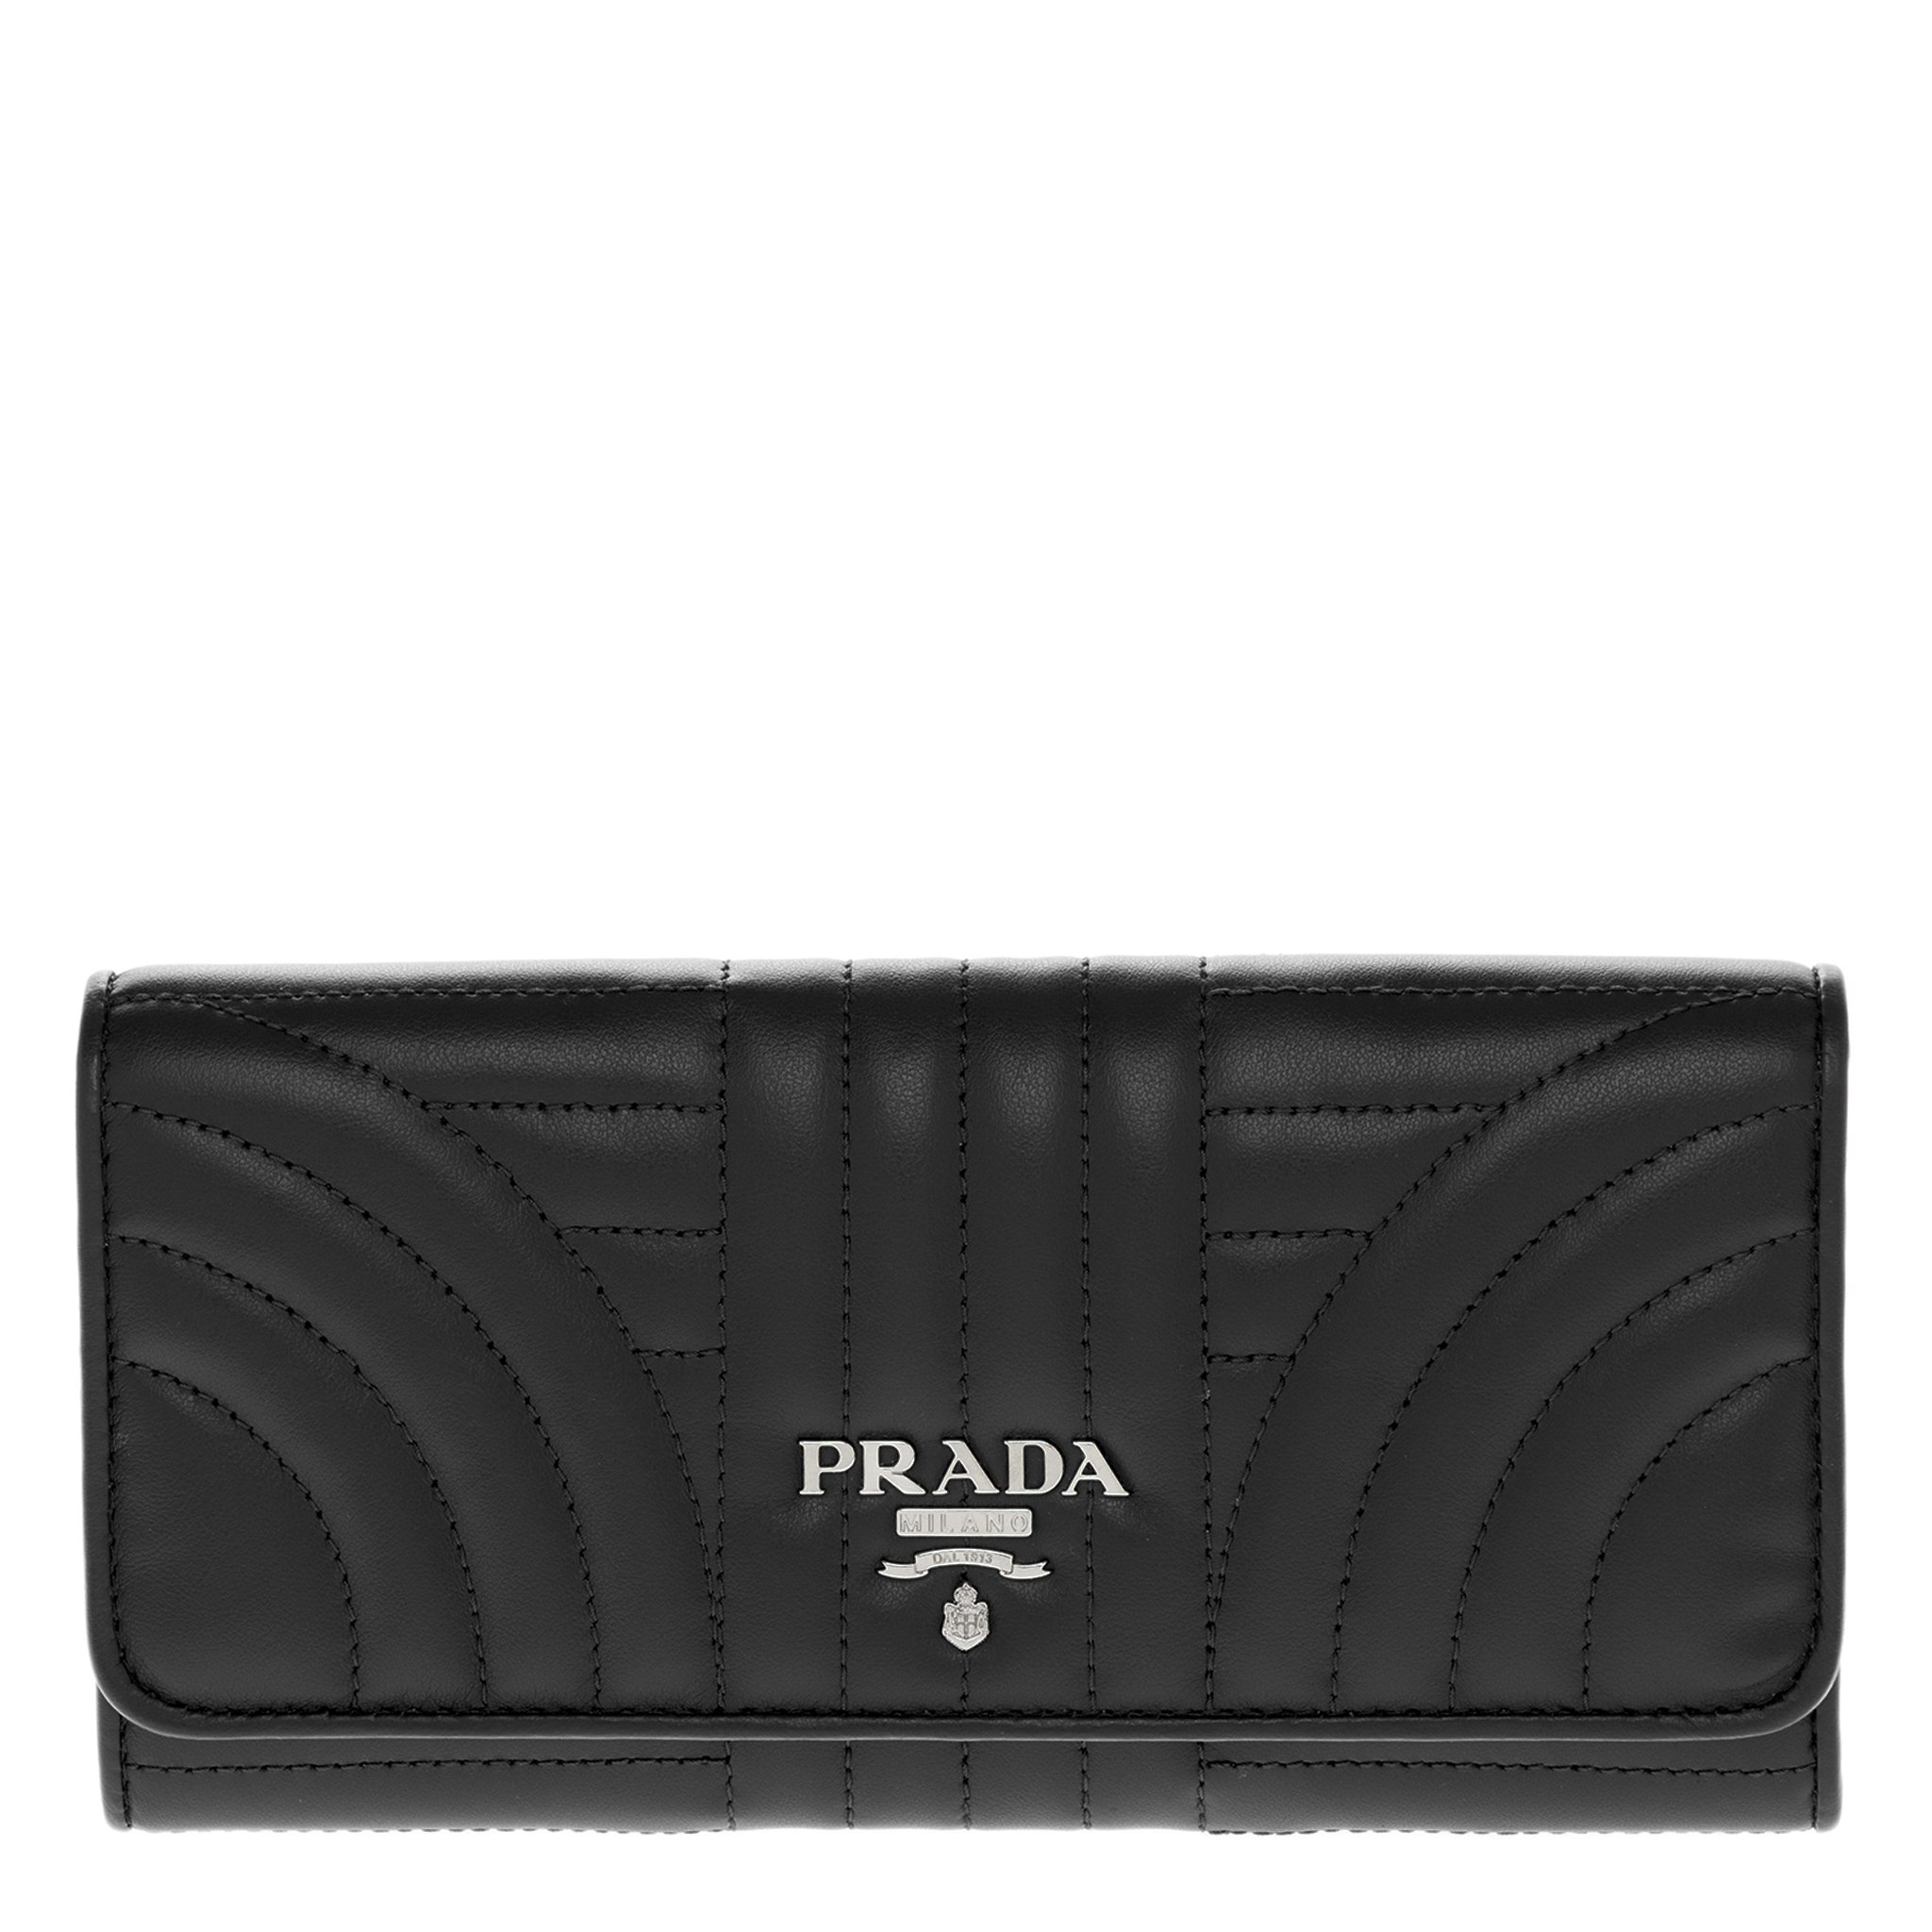 Prada Women's Quilted Calf Leather Wallet Black